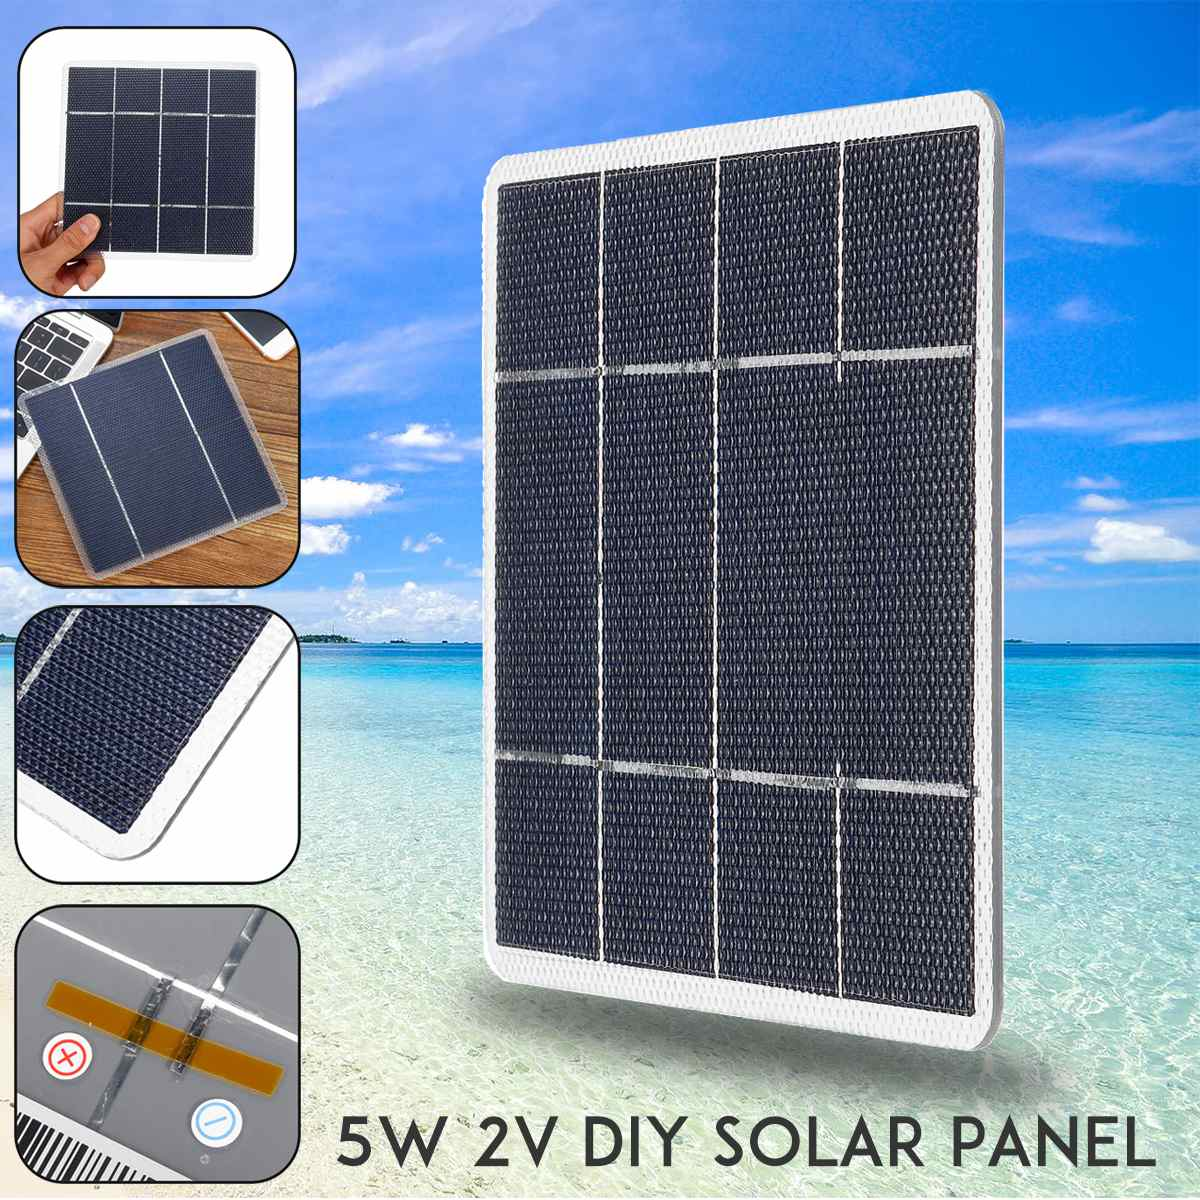 5W 2V 2.5A 170x170mm DIY Monocrystalline Solar Panel ETFE laminated Mono Silicon Cells Photovoltaic Grade A High Efficiency image